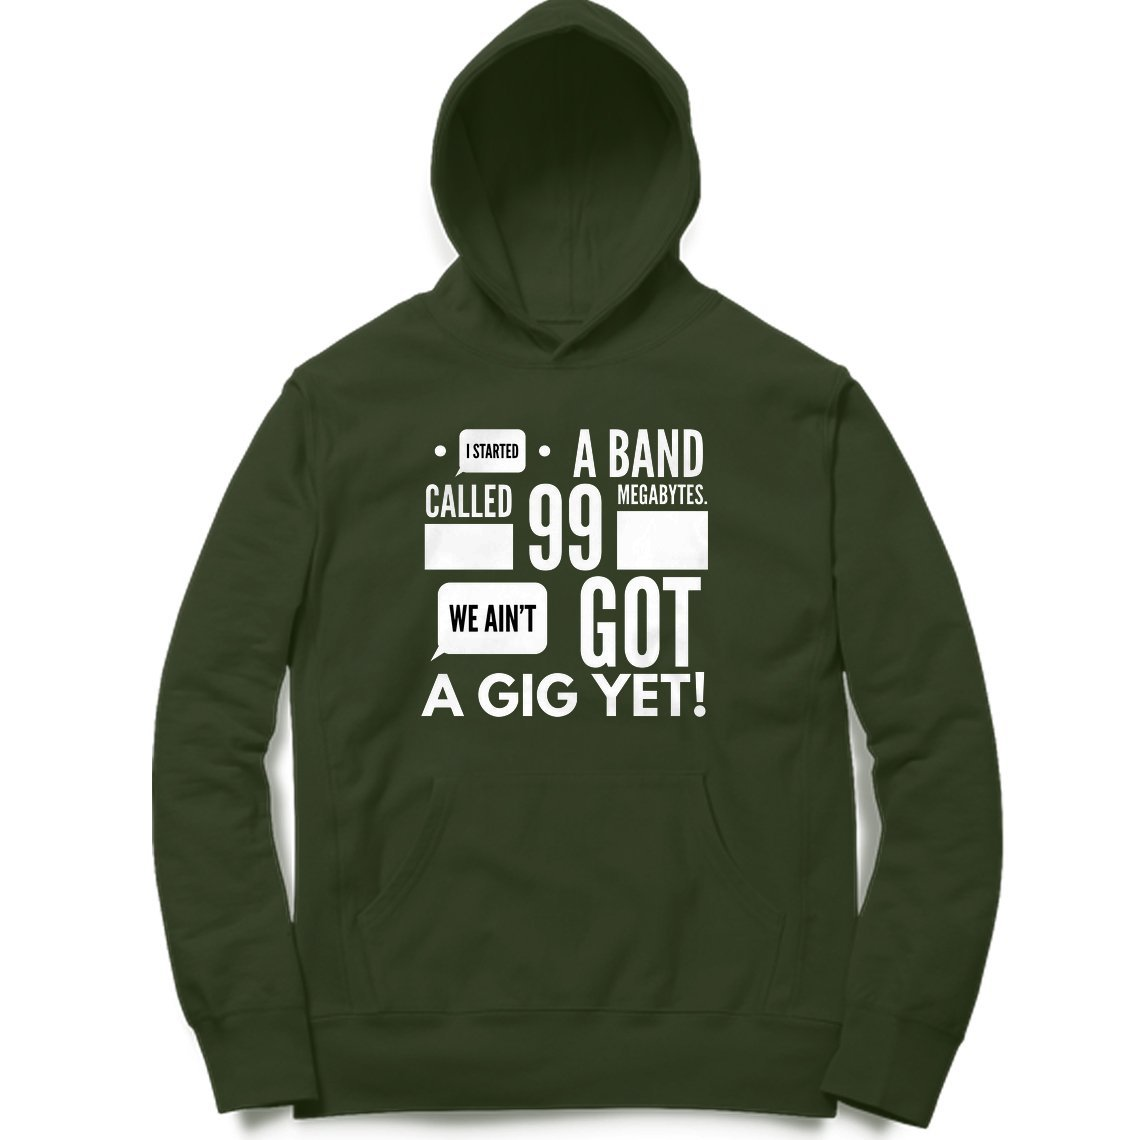 Aint got Gig Yet Clothing Printrove Olive Green S